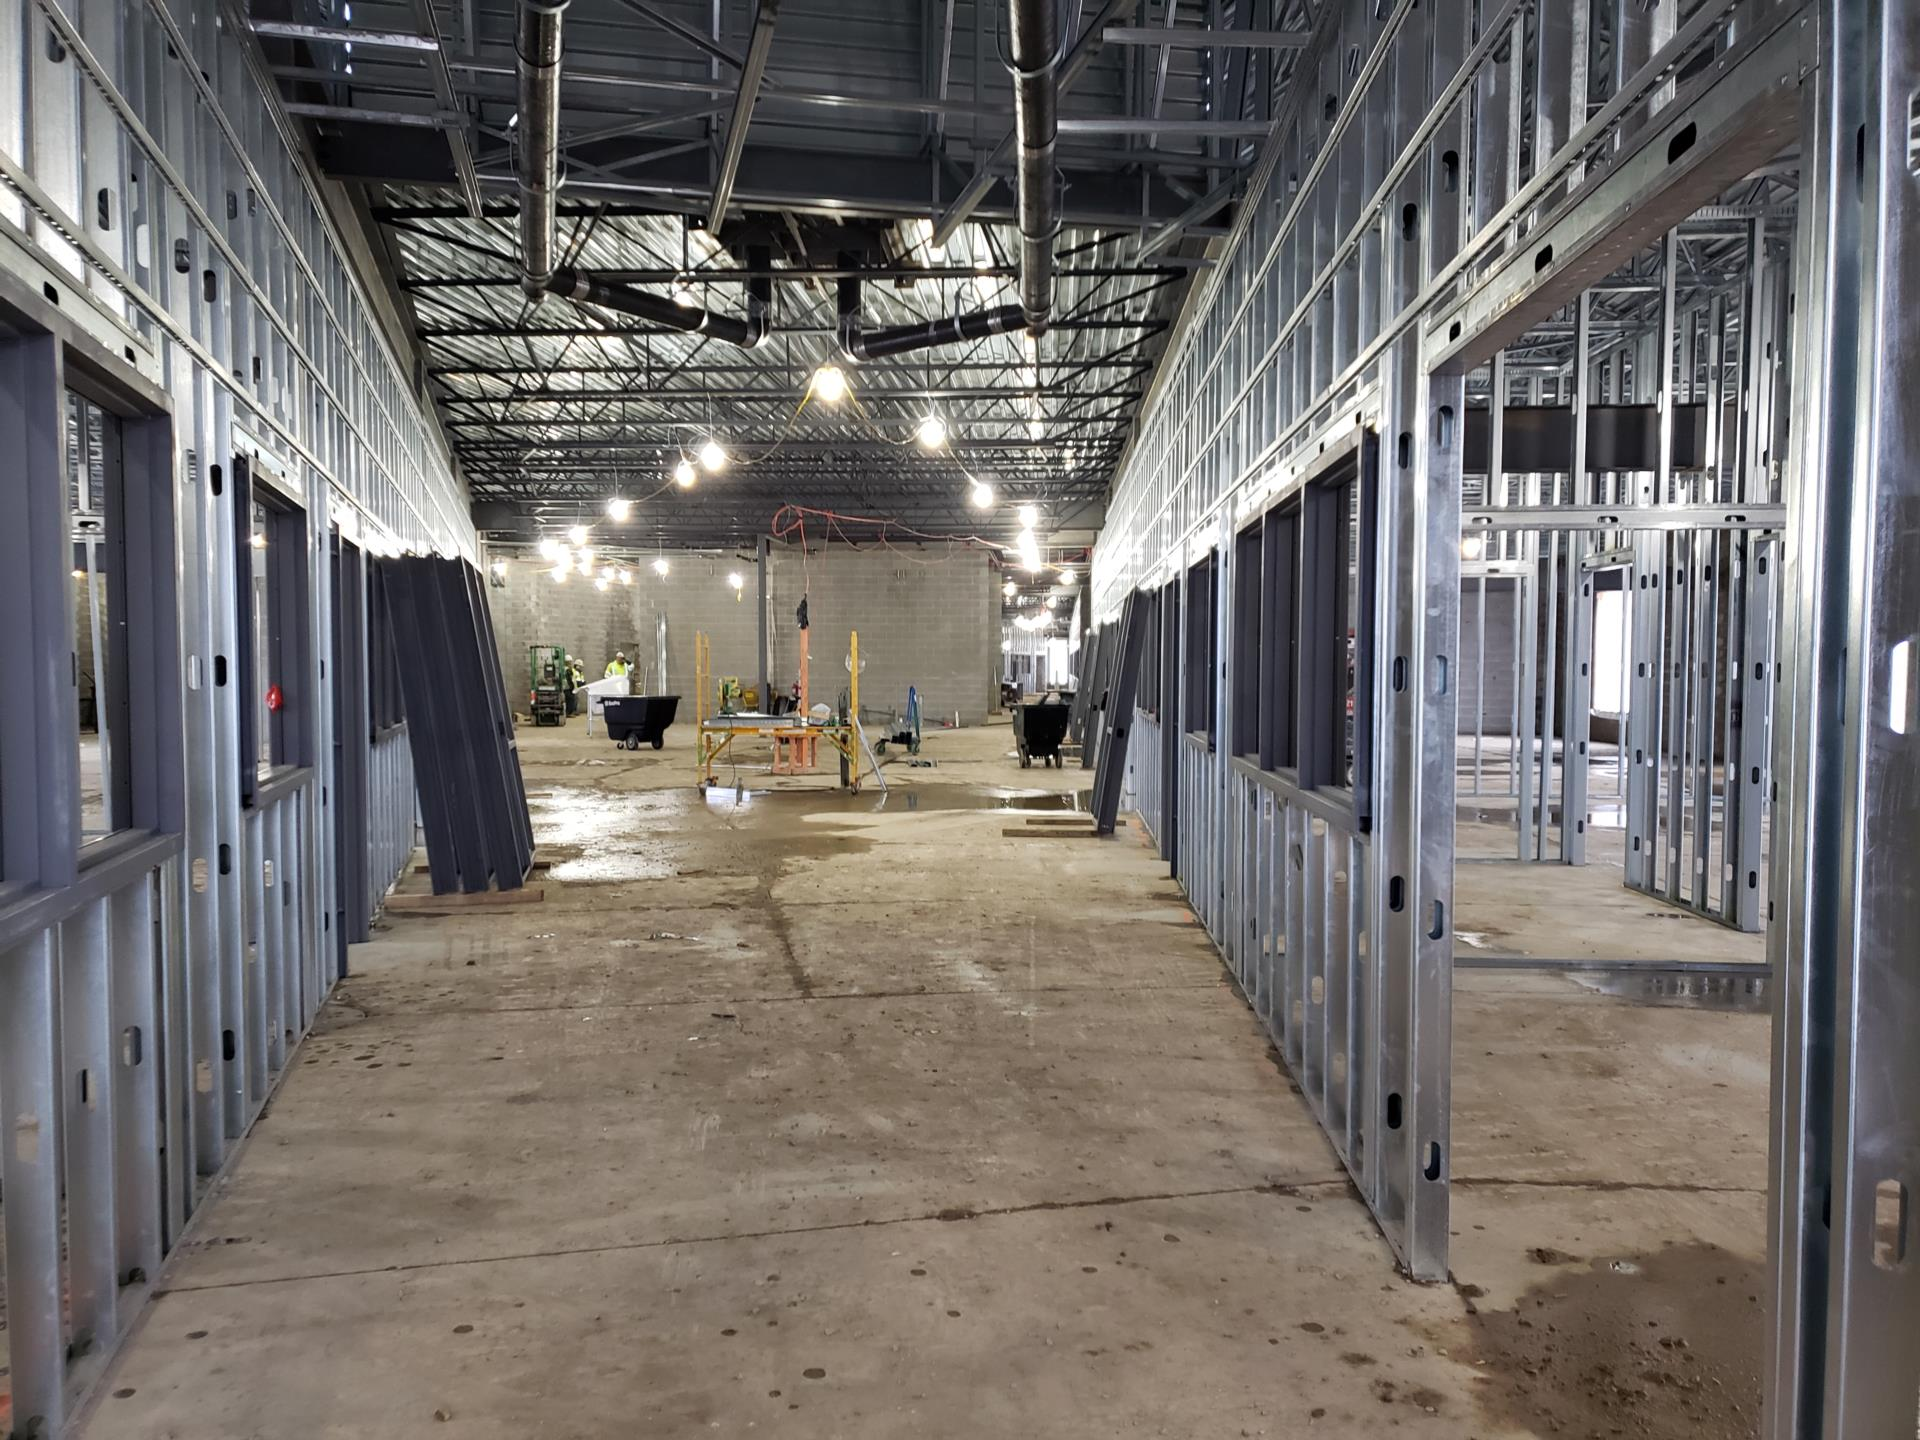 Extended learning hall at Prarie Run Elementary on January 29, 2020